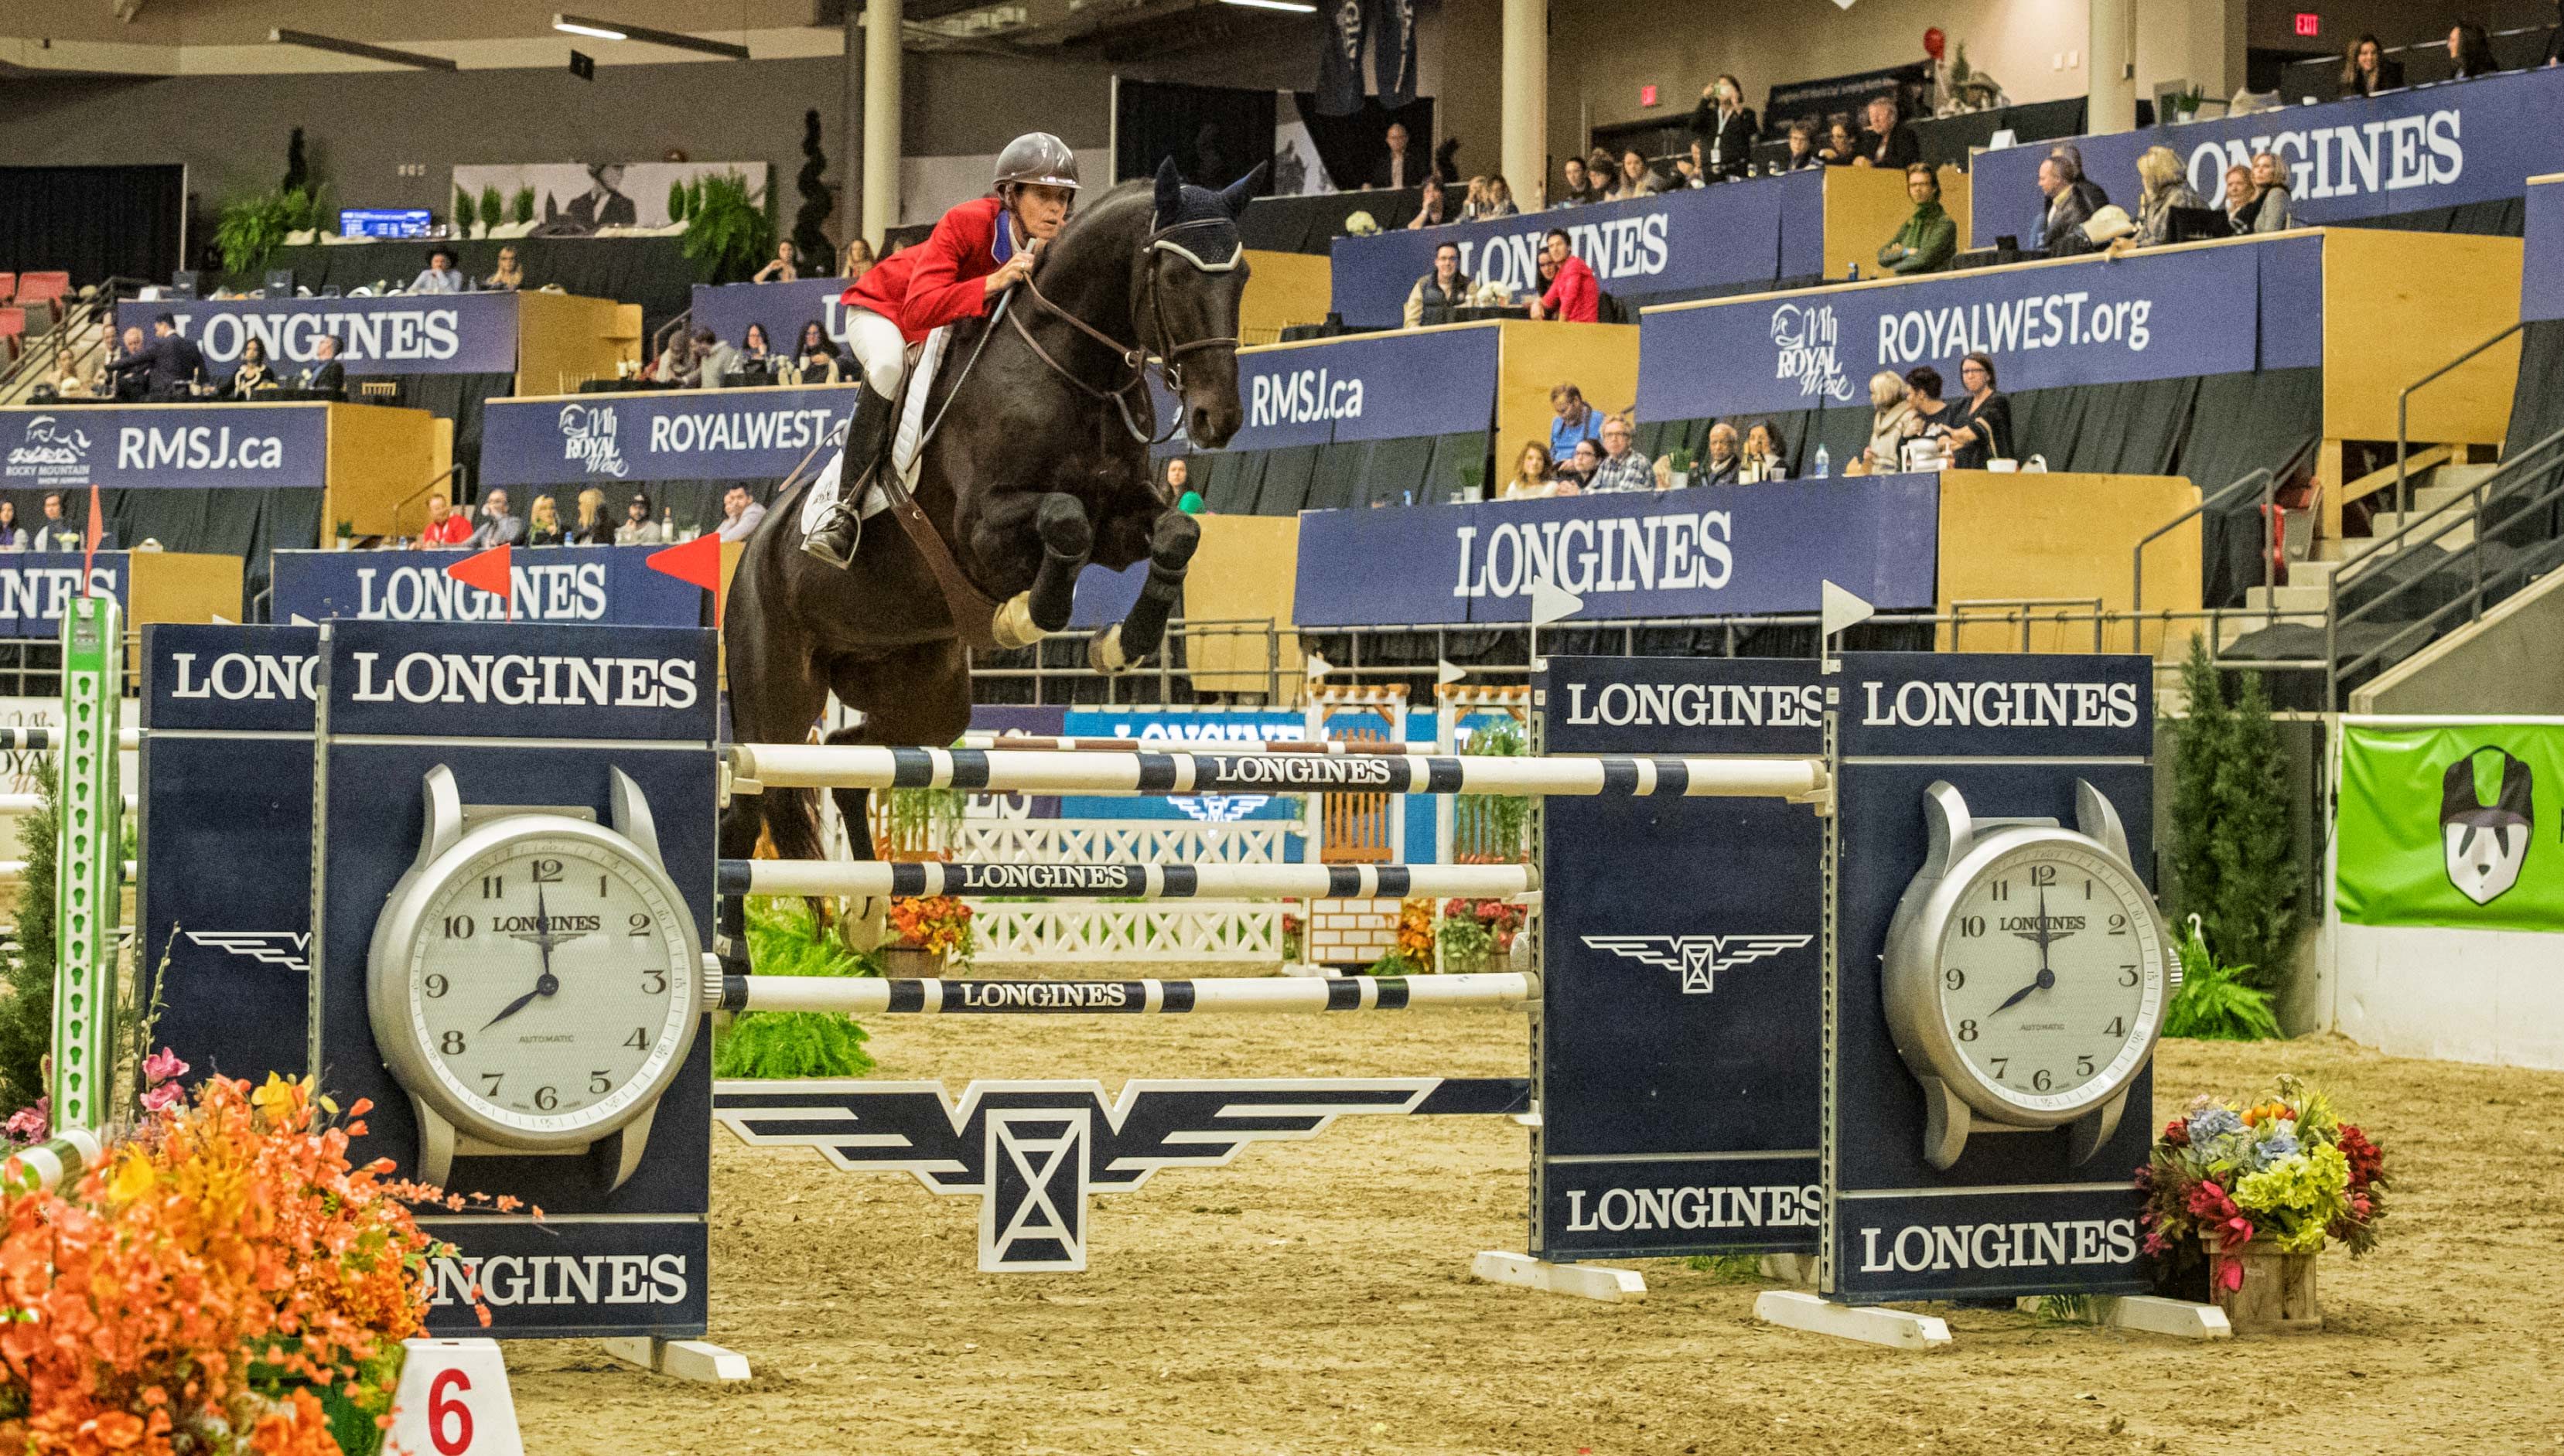 The United States' Jenni McAllister pilots Legis Touch The Sun to the top in the $132,000 Longines FEI World Cup™ Jumping Royal West. © FEI/Aimee Makris